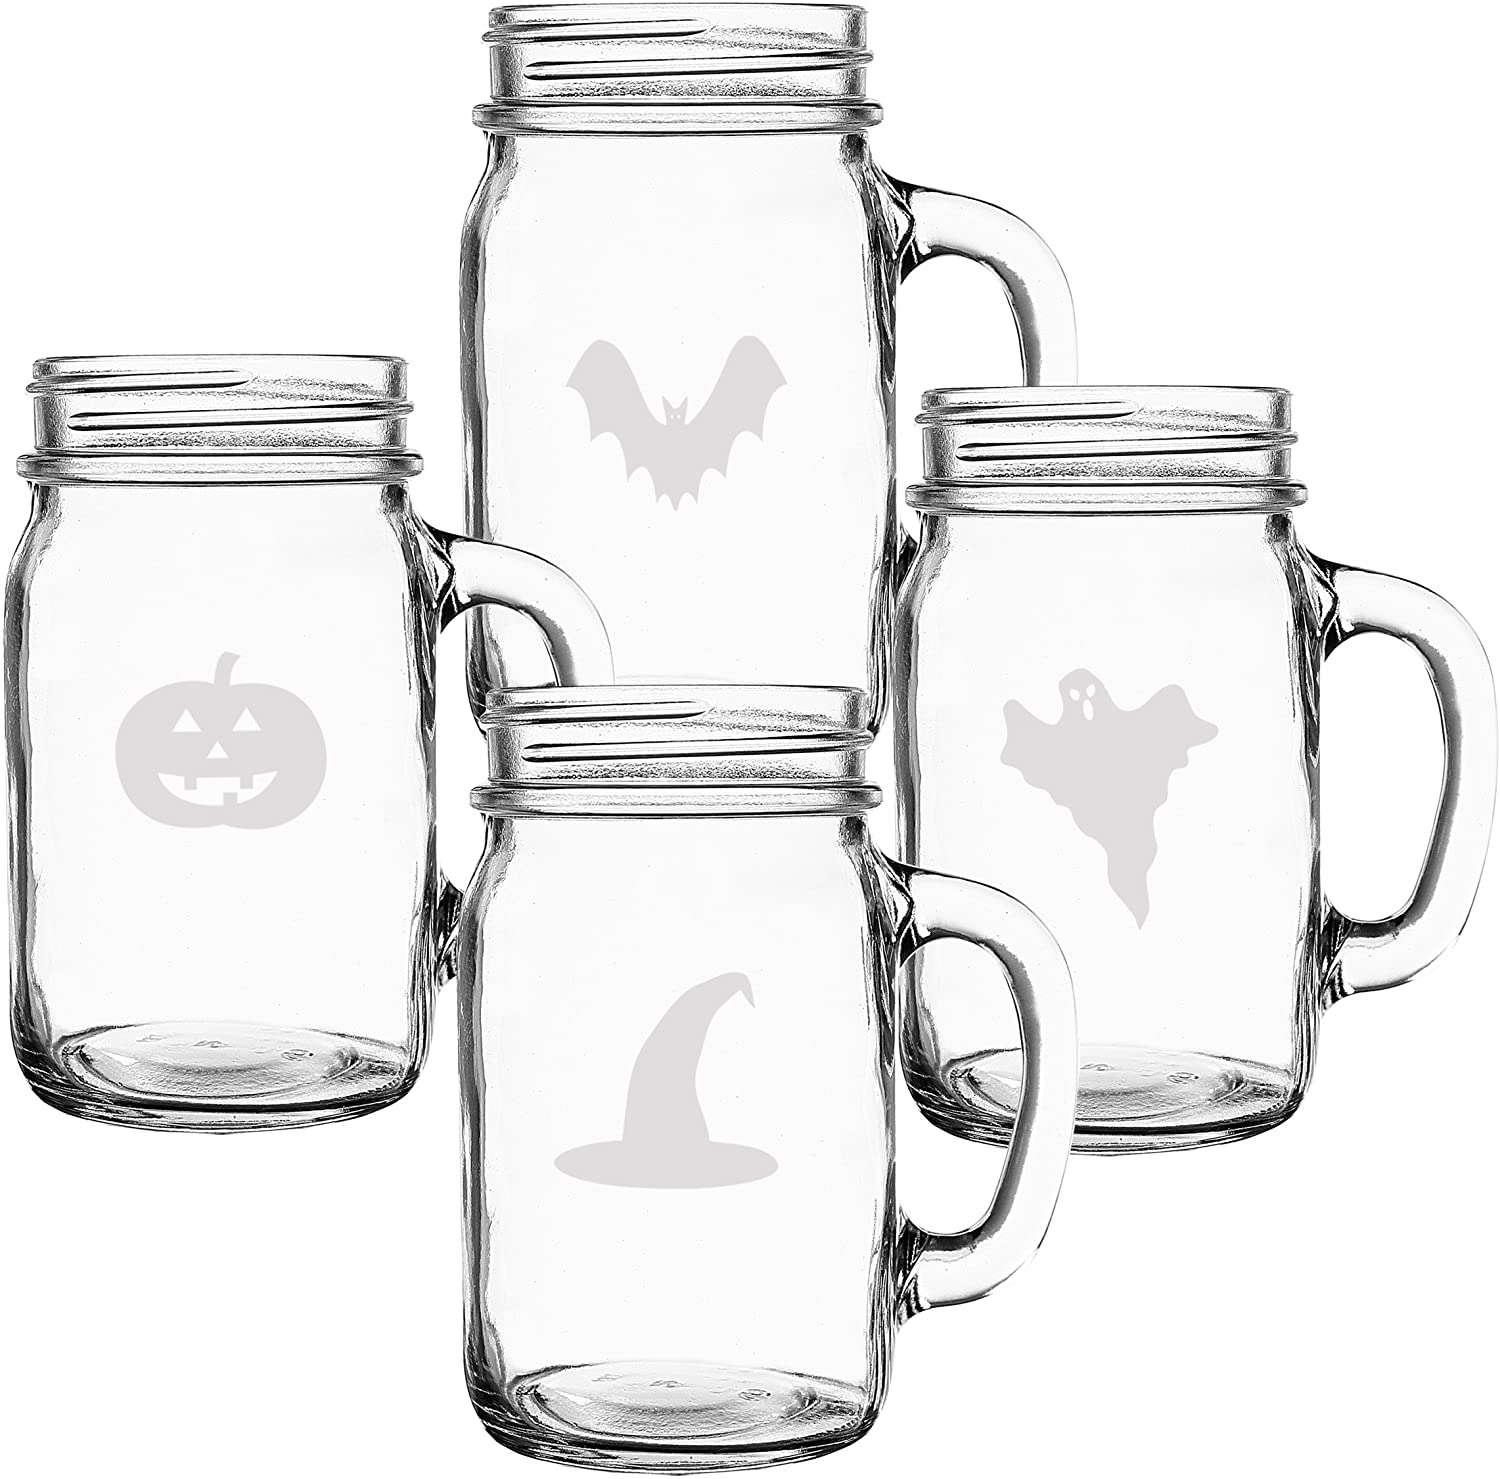 Four shot glasses with Halloween creatures etched into them.